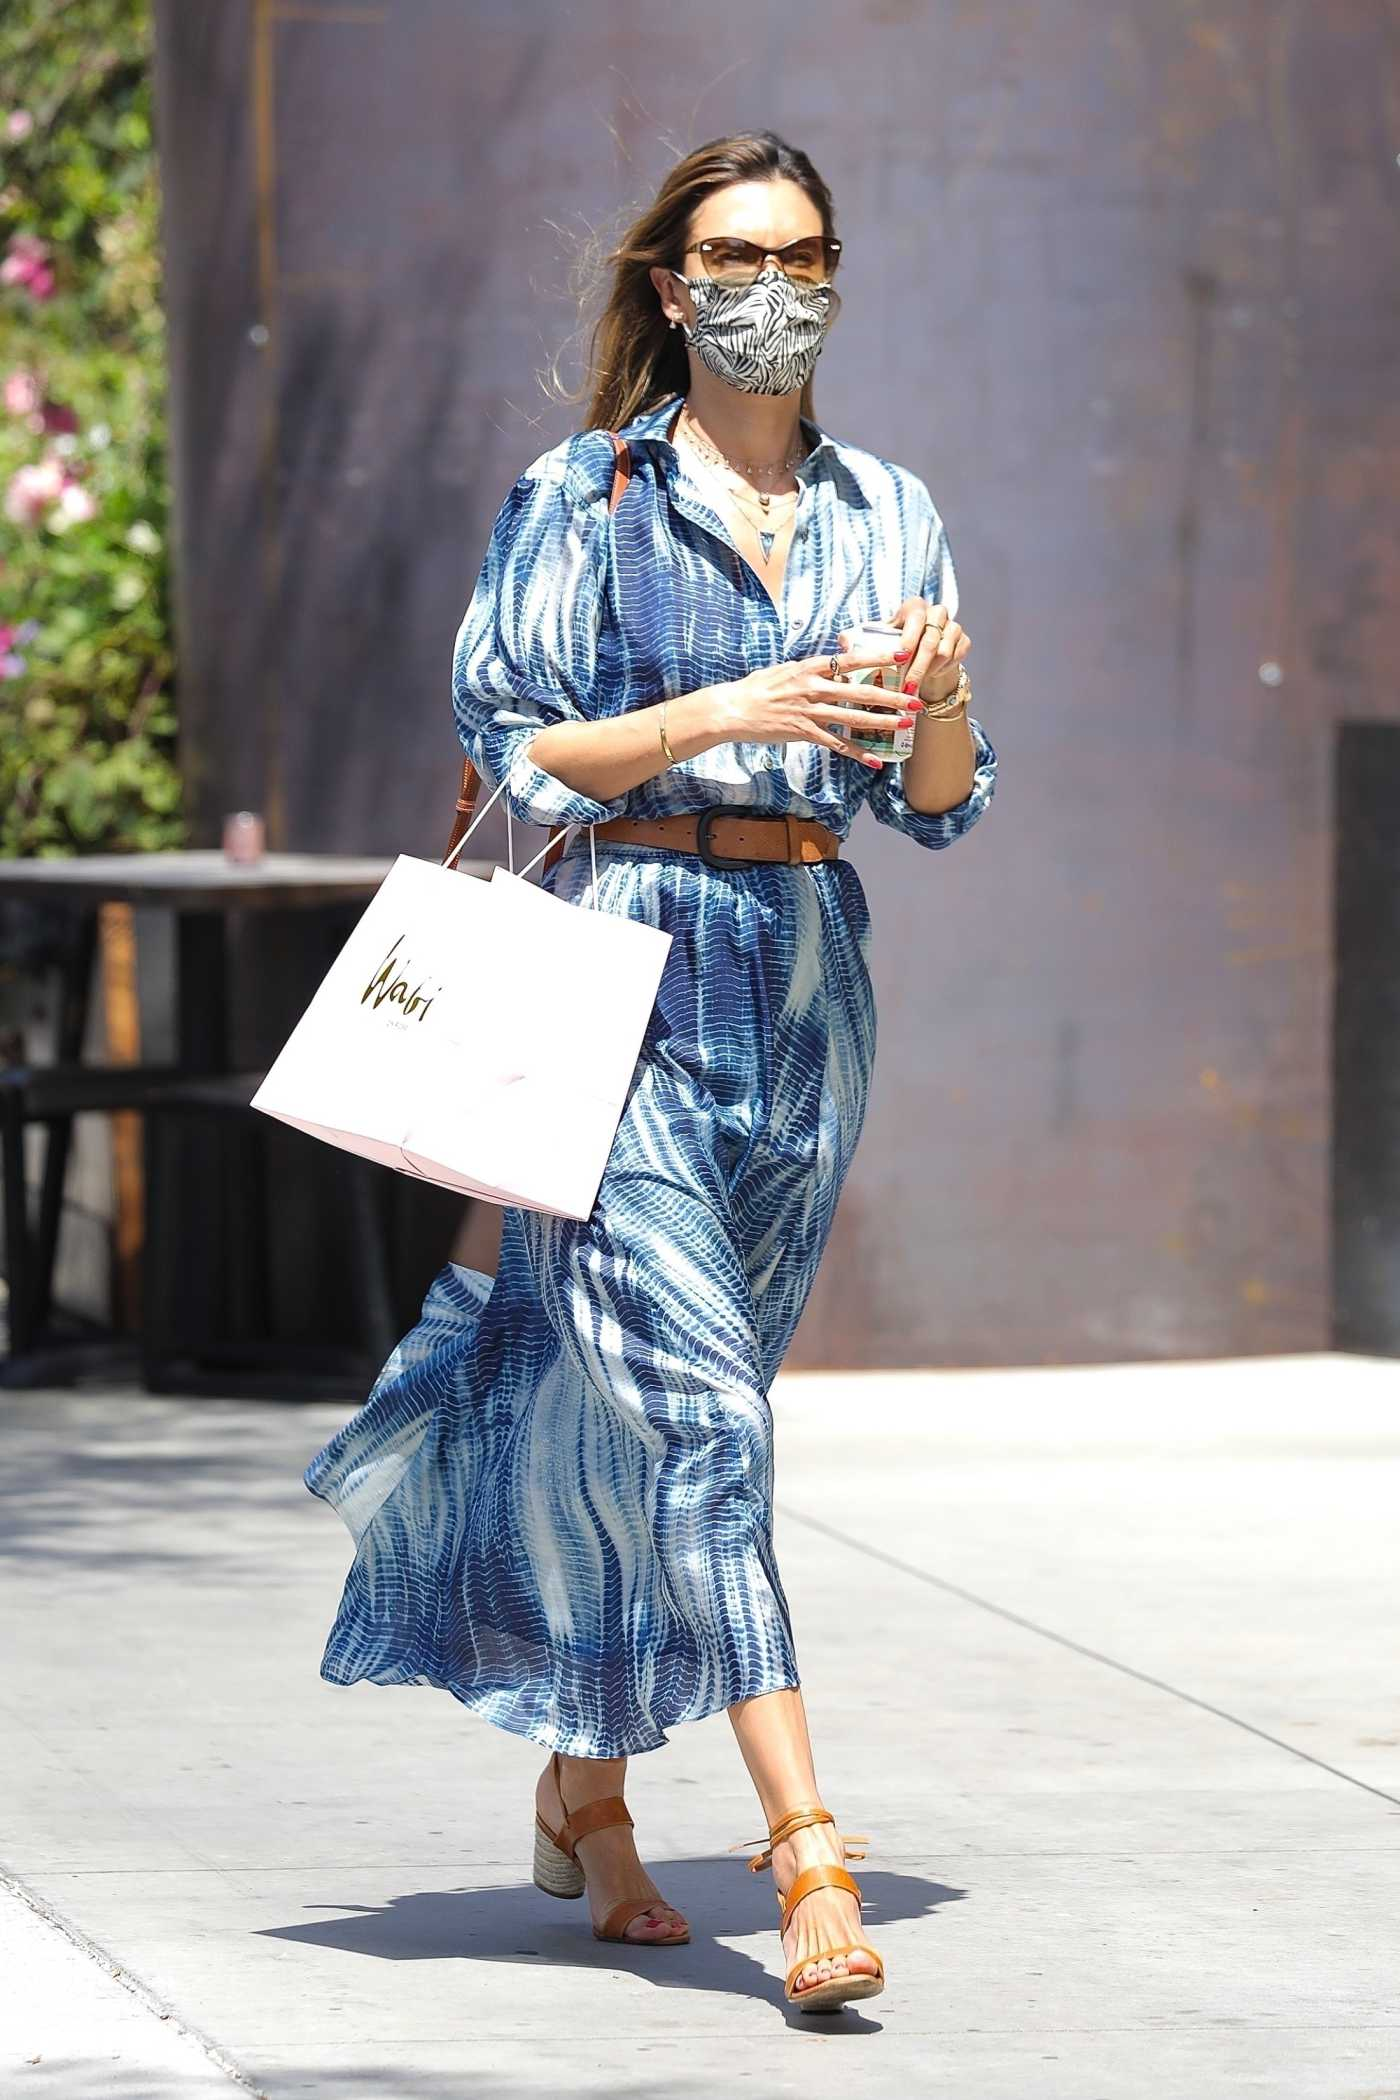 Alessandra Ambrosio in a Blue Dress Goes Shopping in Los Angeles 07/27/2020